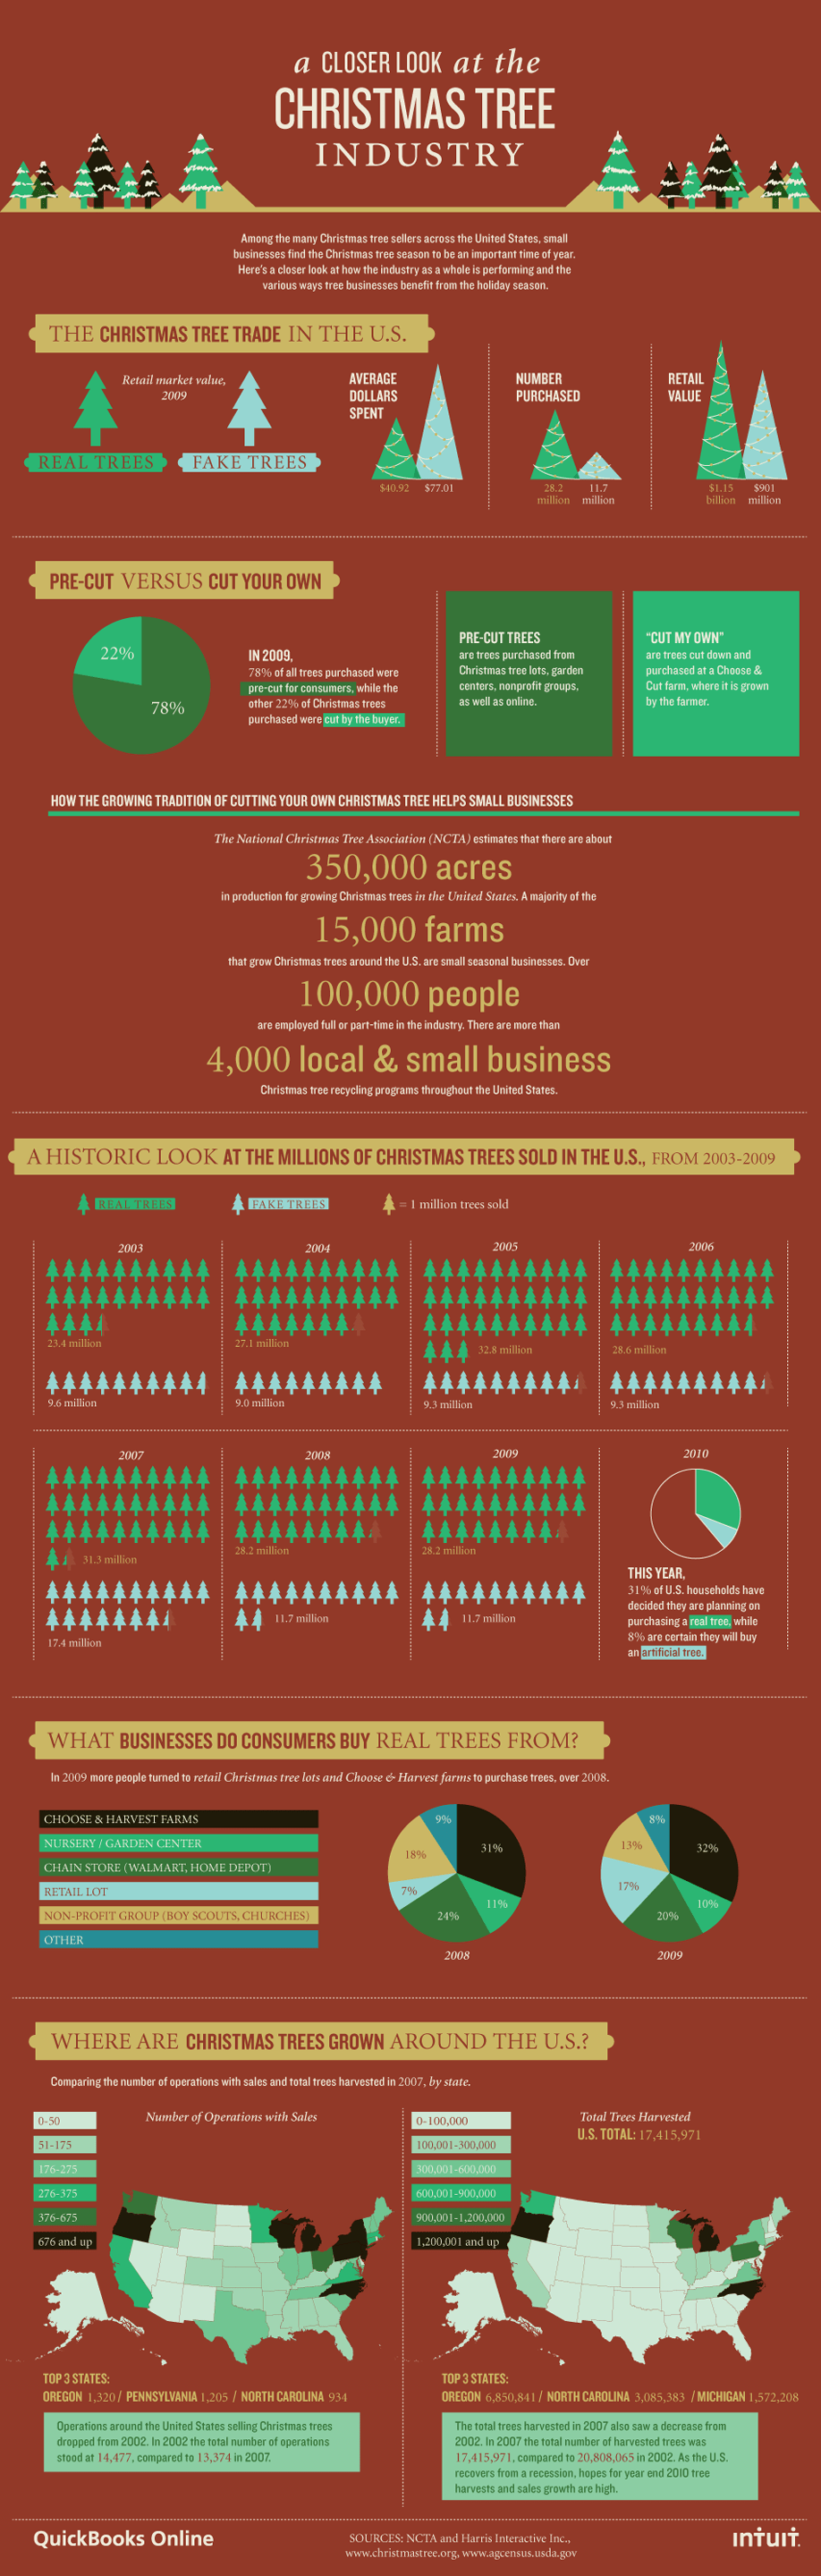 A Closer Look at the Christmas Tree Industry